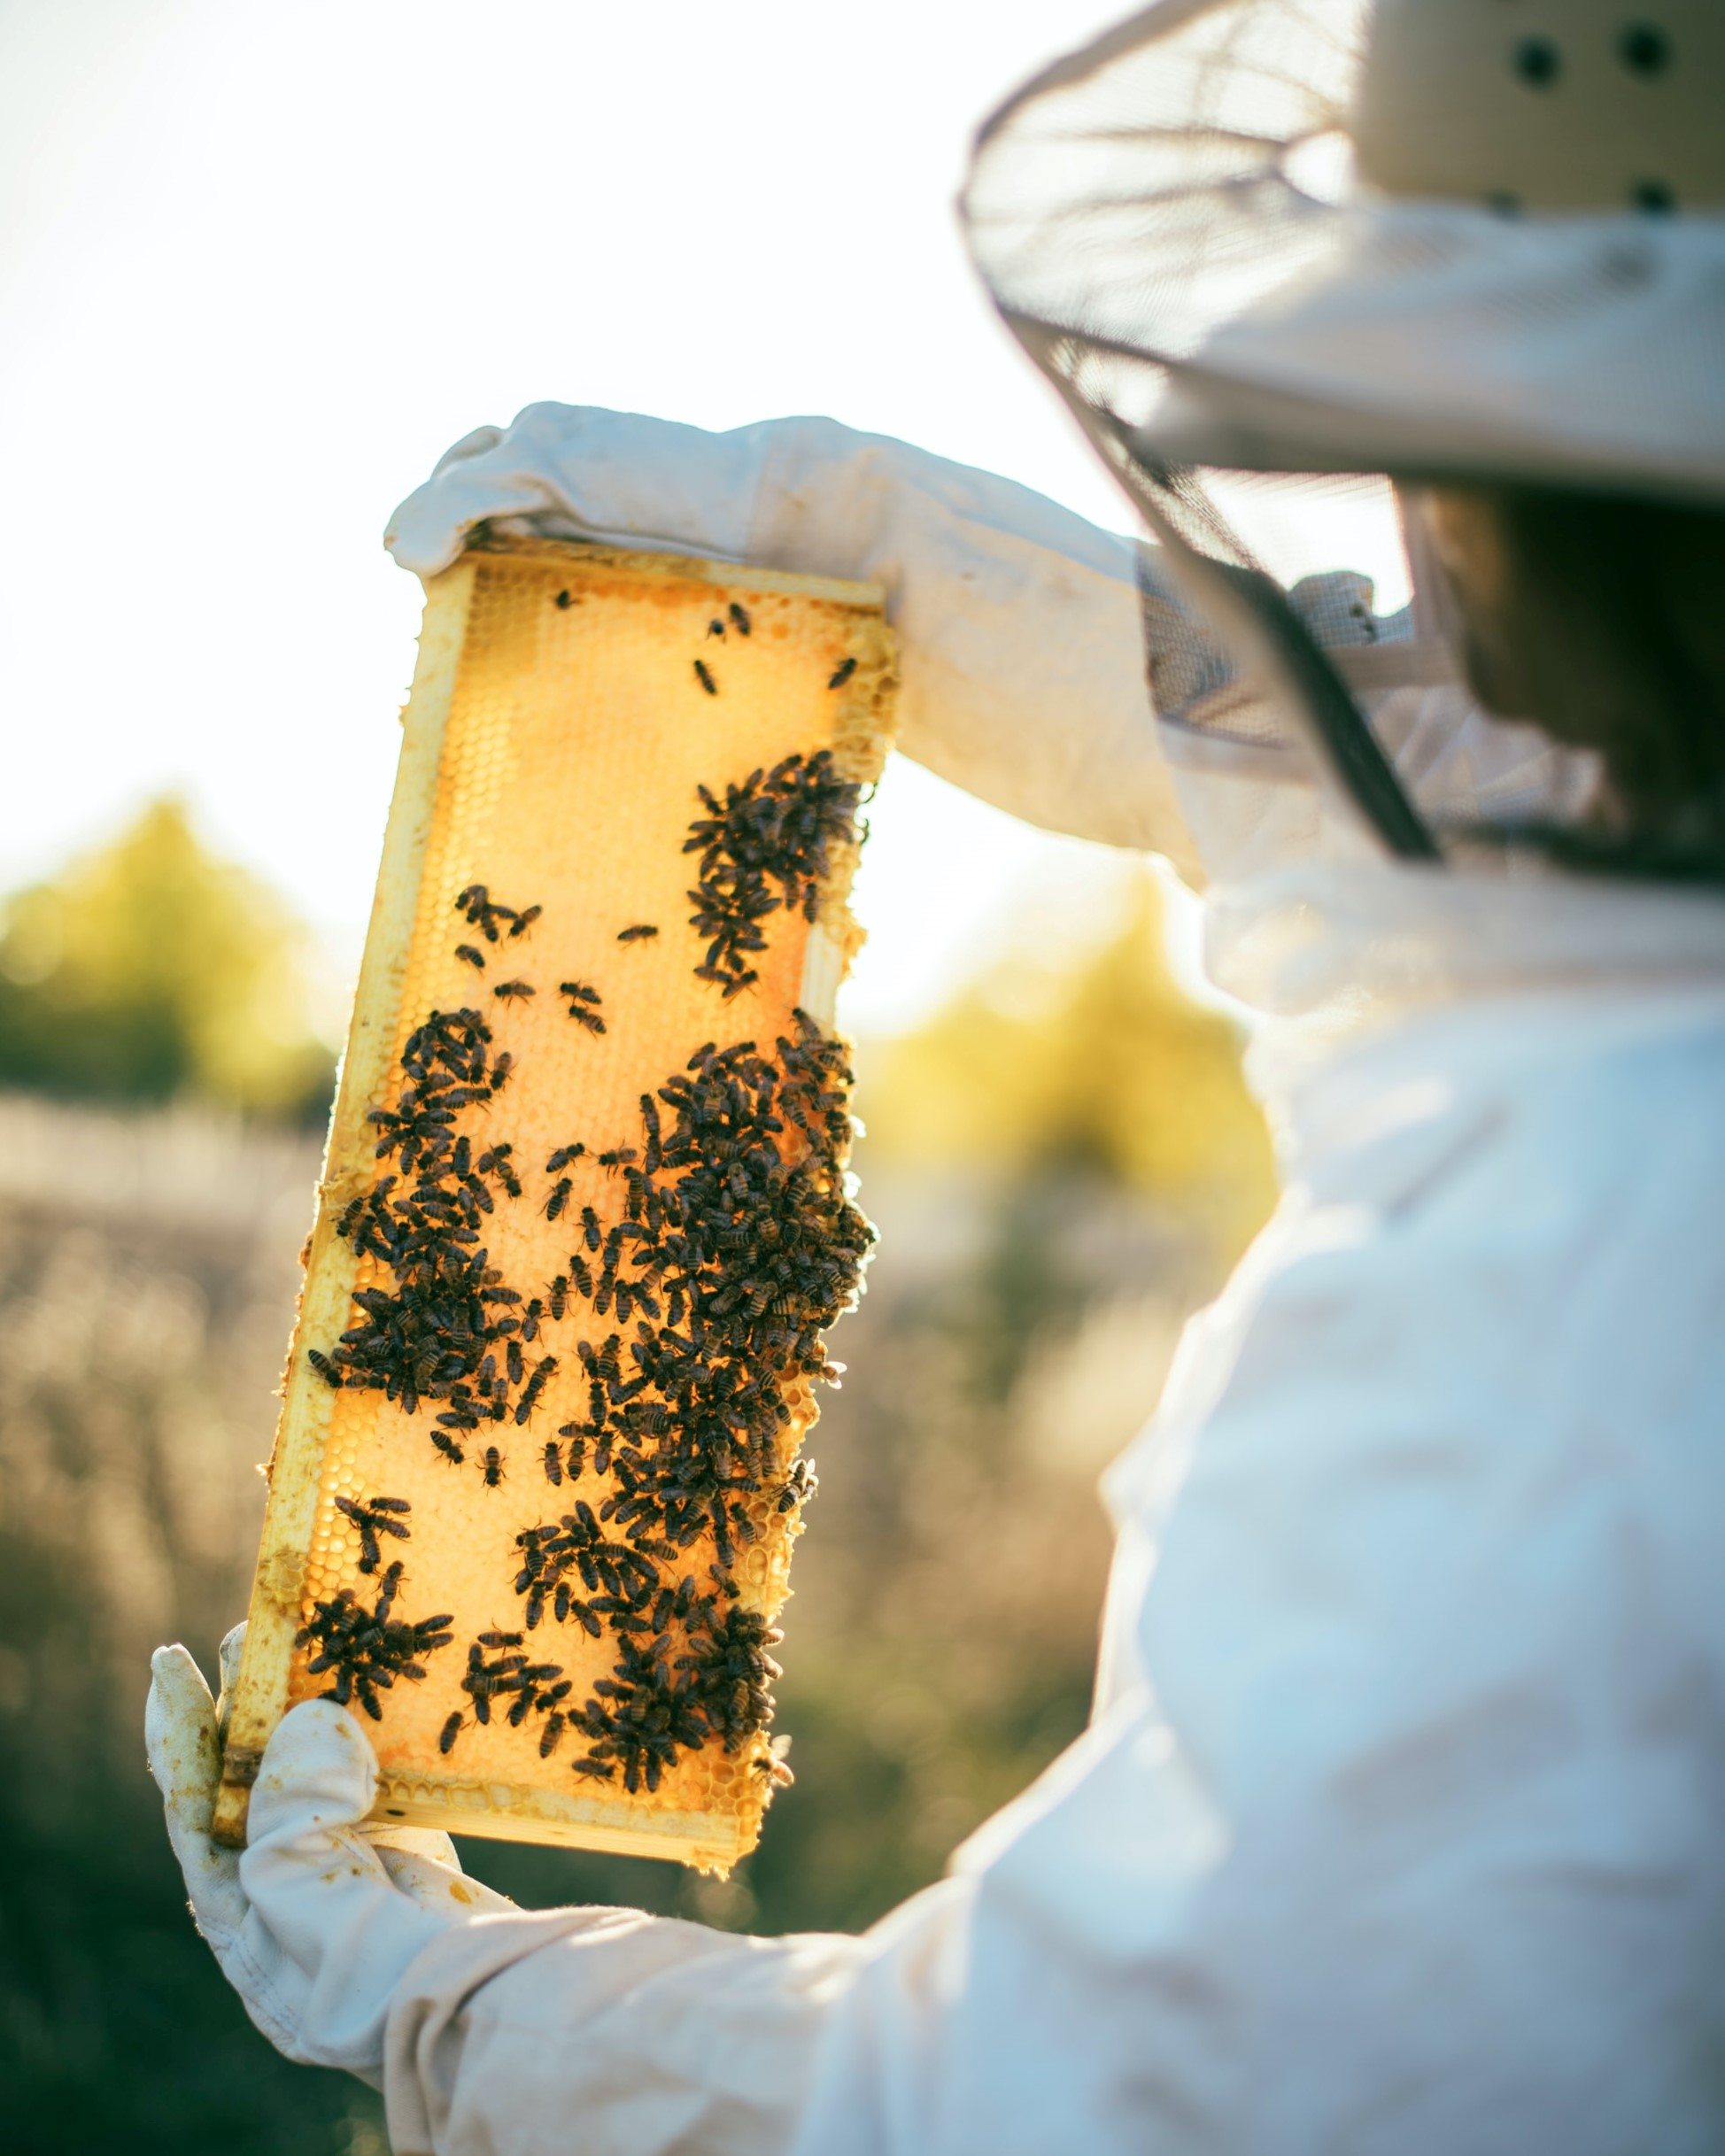 A beekeeper in a white apiarist suit holding up a piece of honeycomb against the sunlight.